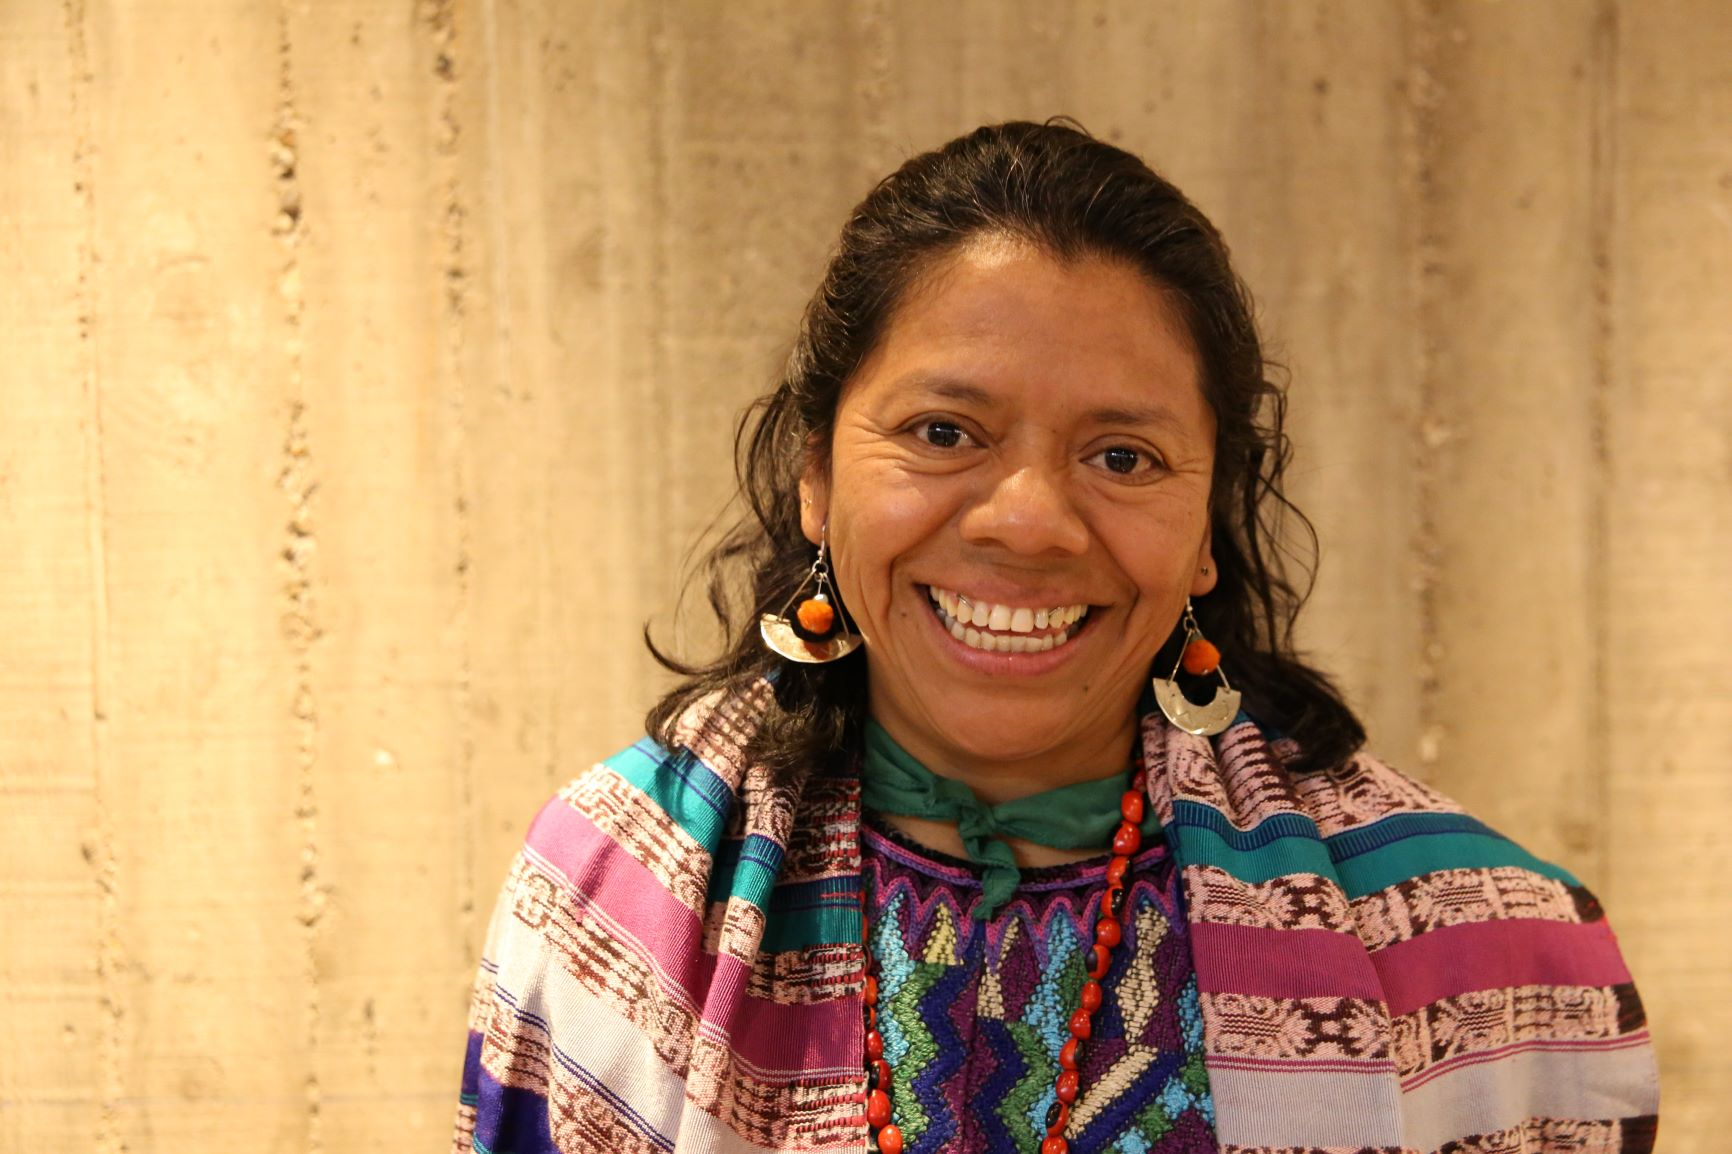 257584 Lolita Chavez  Guatemala - Human Rights Defenders World Summit S